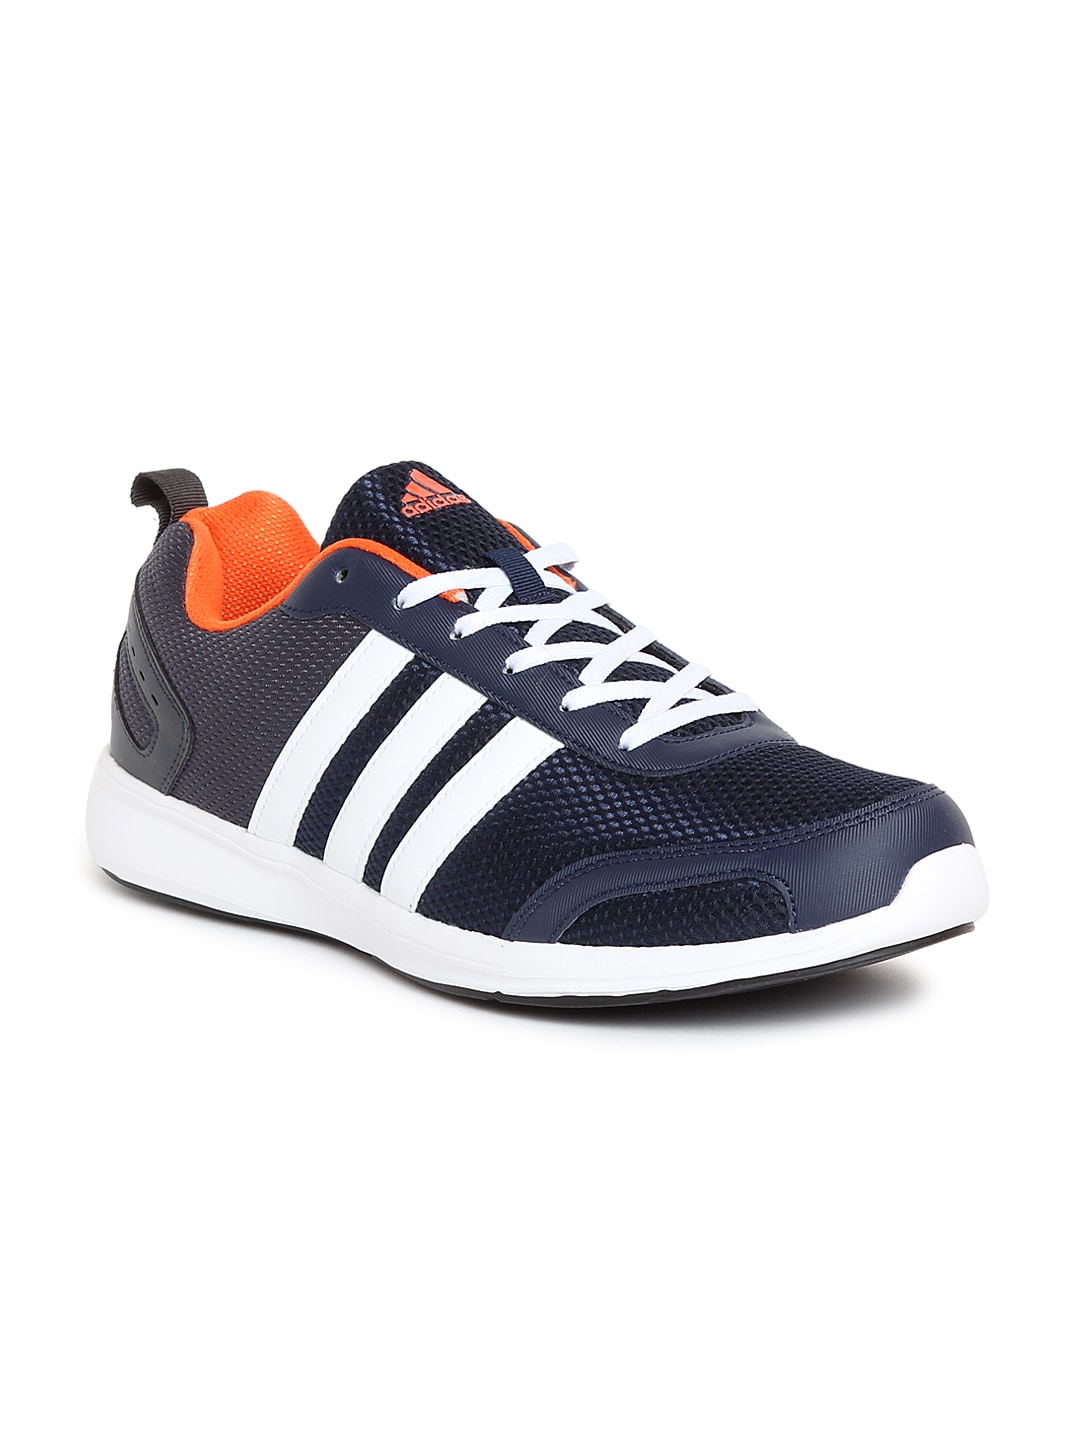 Adidas Shoes For Men Latest